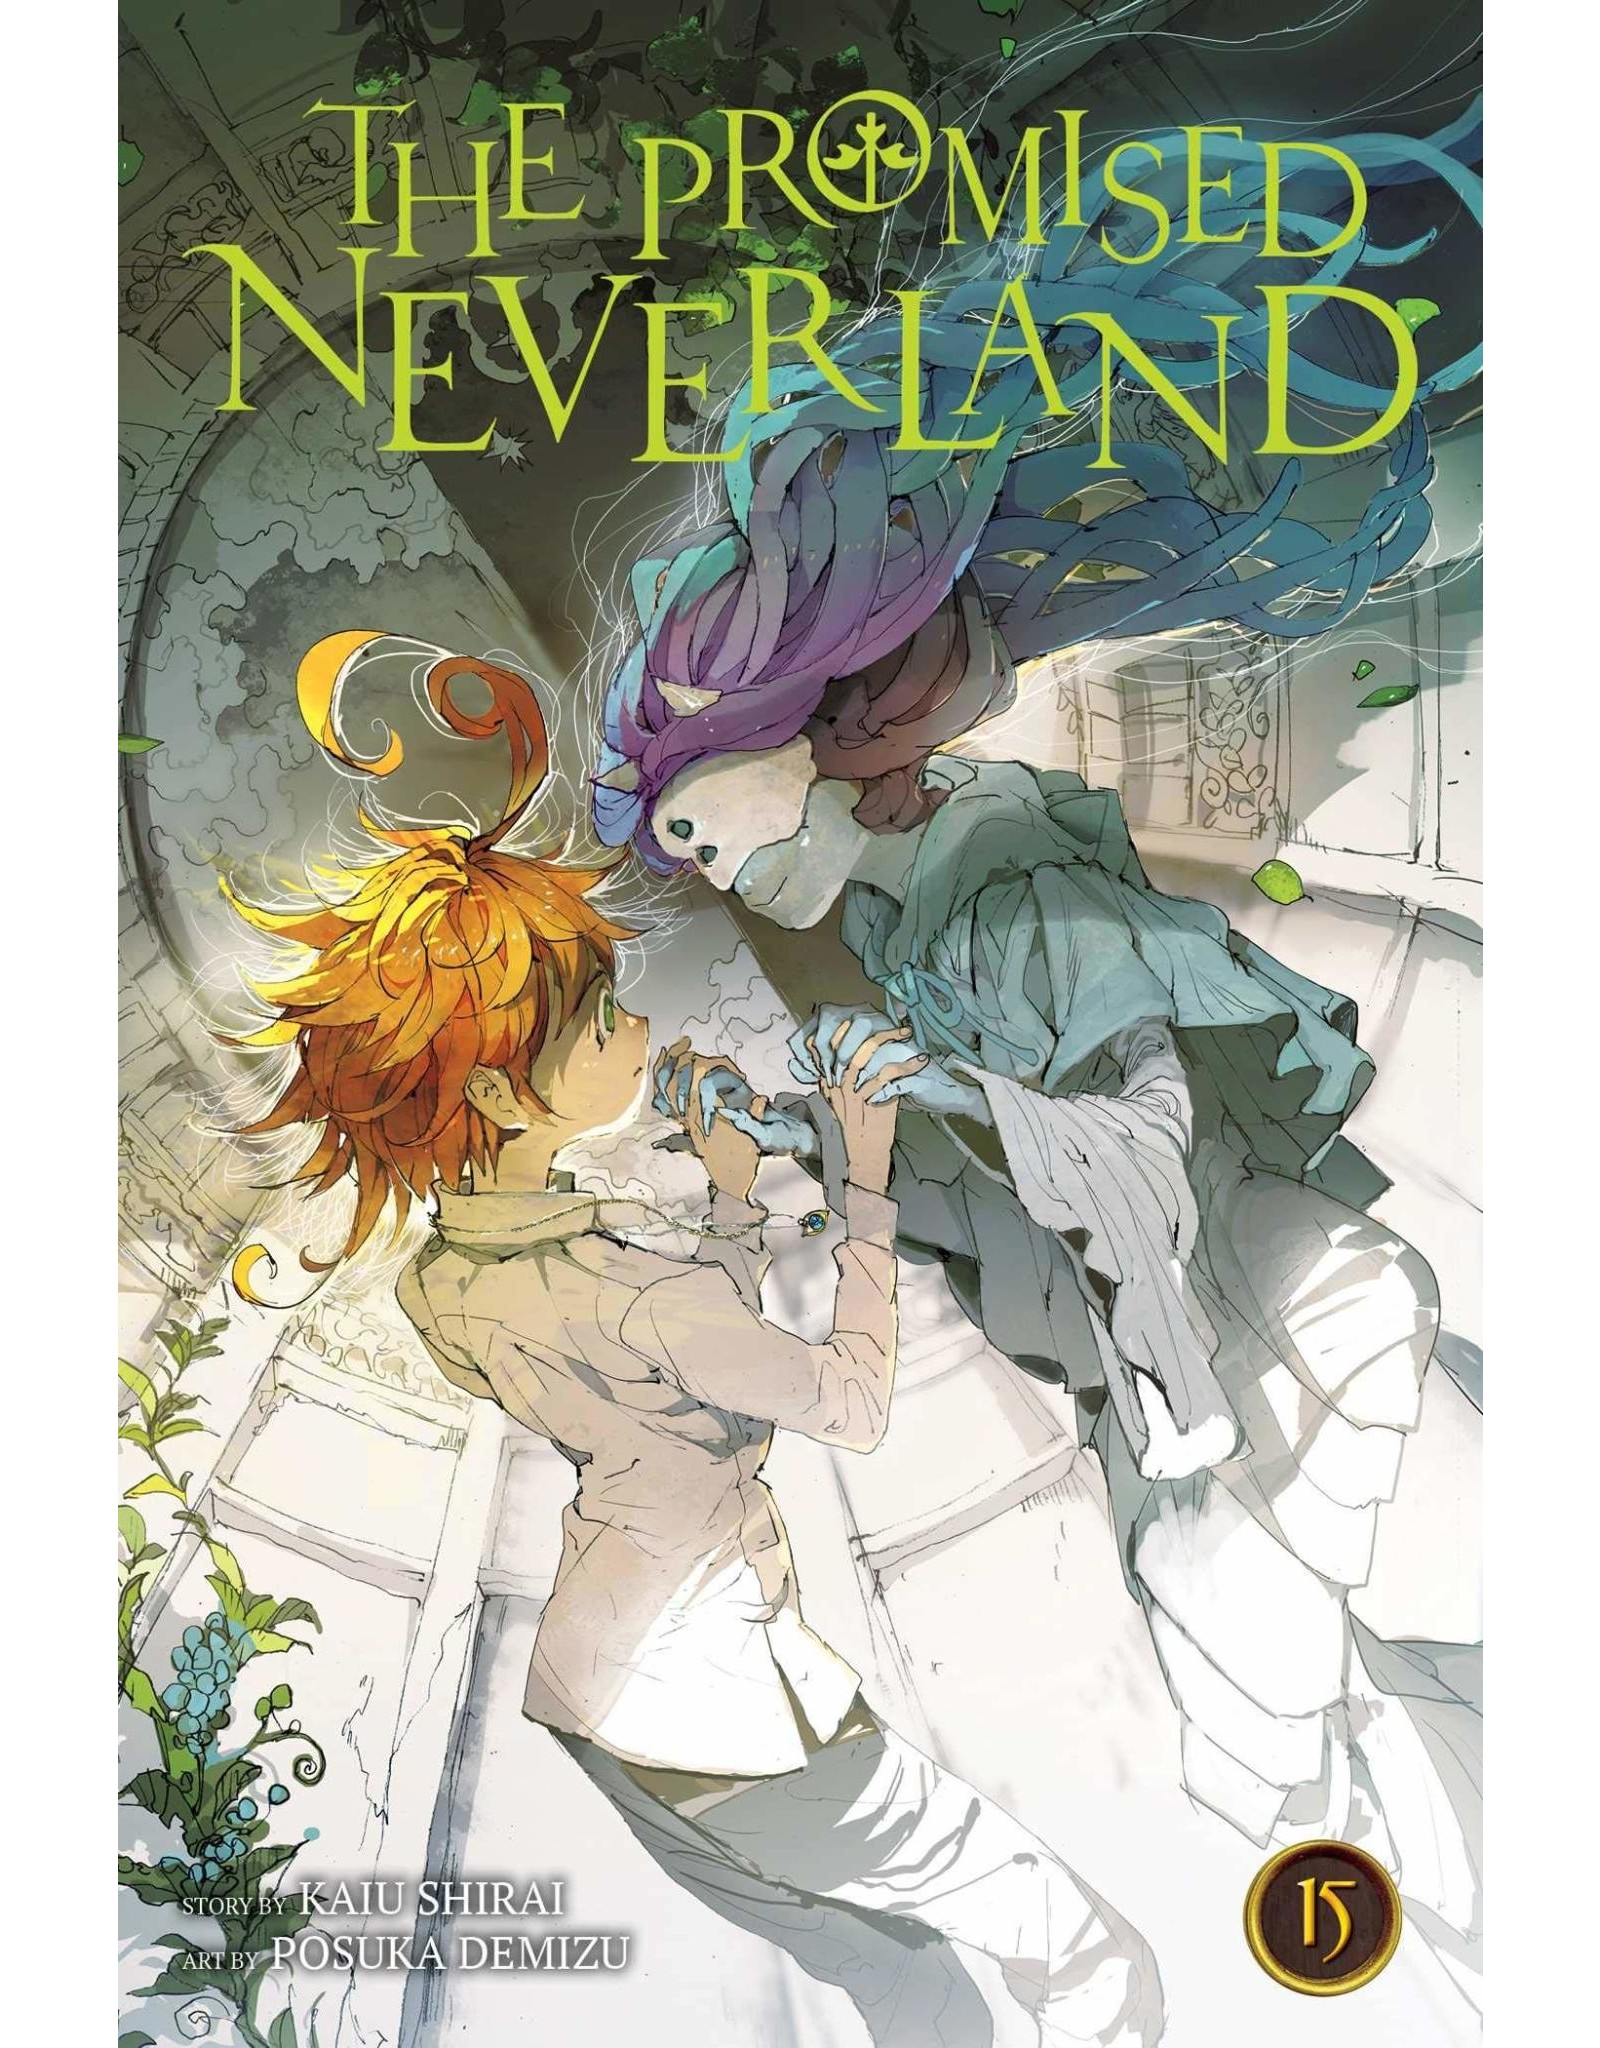 The Promised Neverland 15 (English Version)